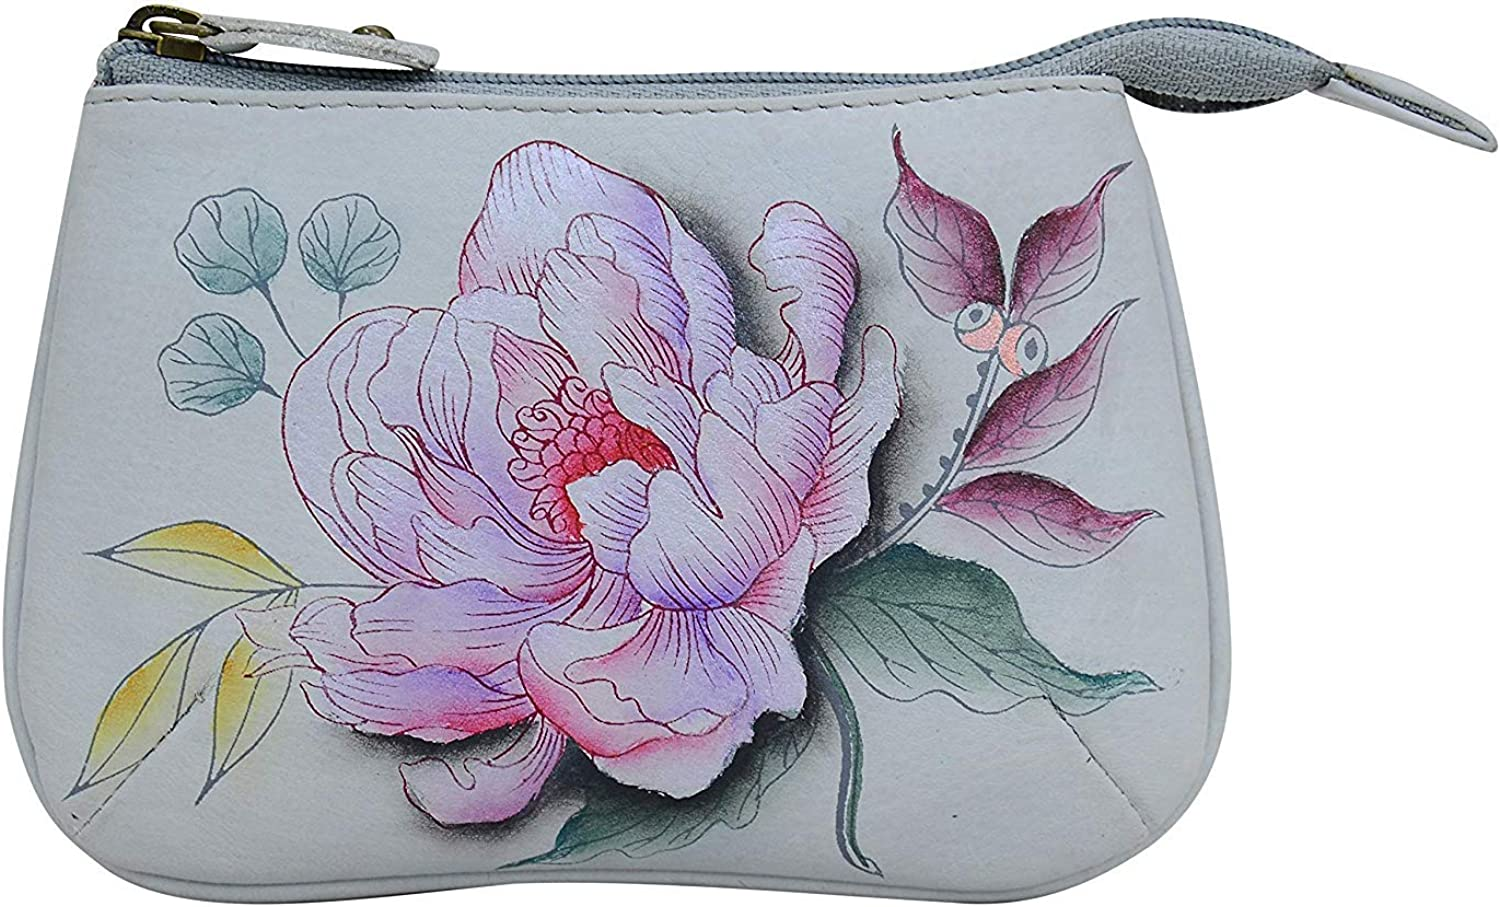 Anuschka Medium Organizer Pouch / Coin Purse |  Genuine Leather, Hand-painted Original Art